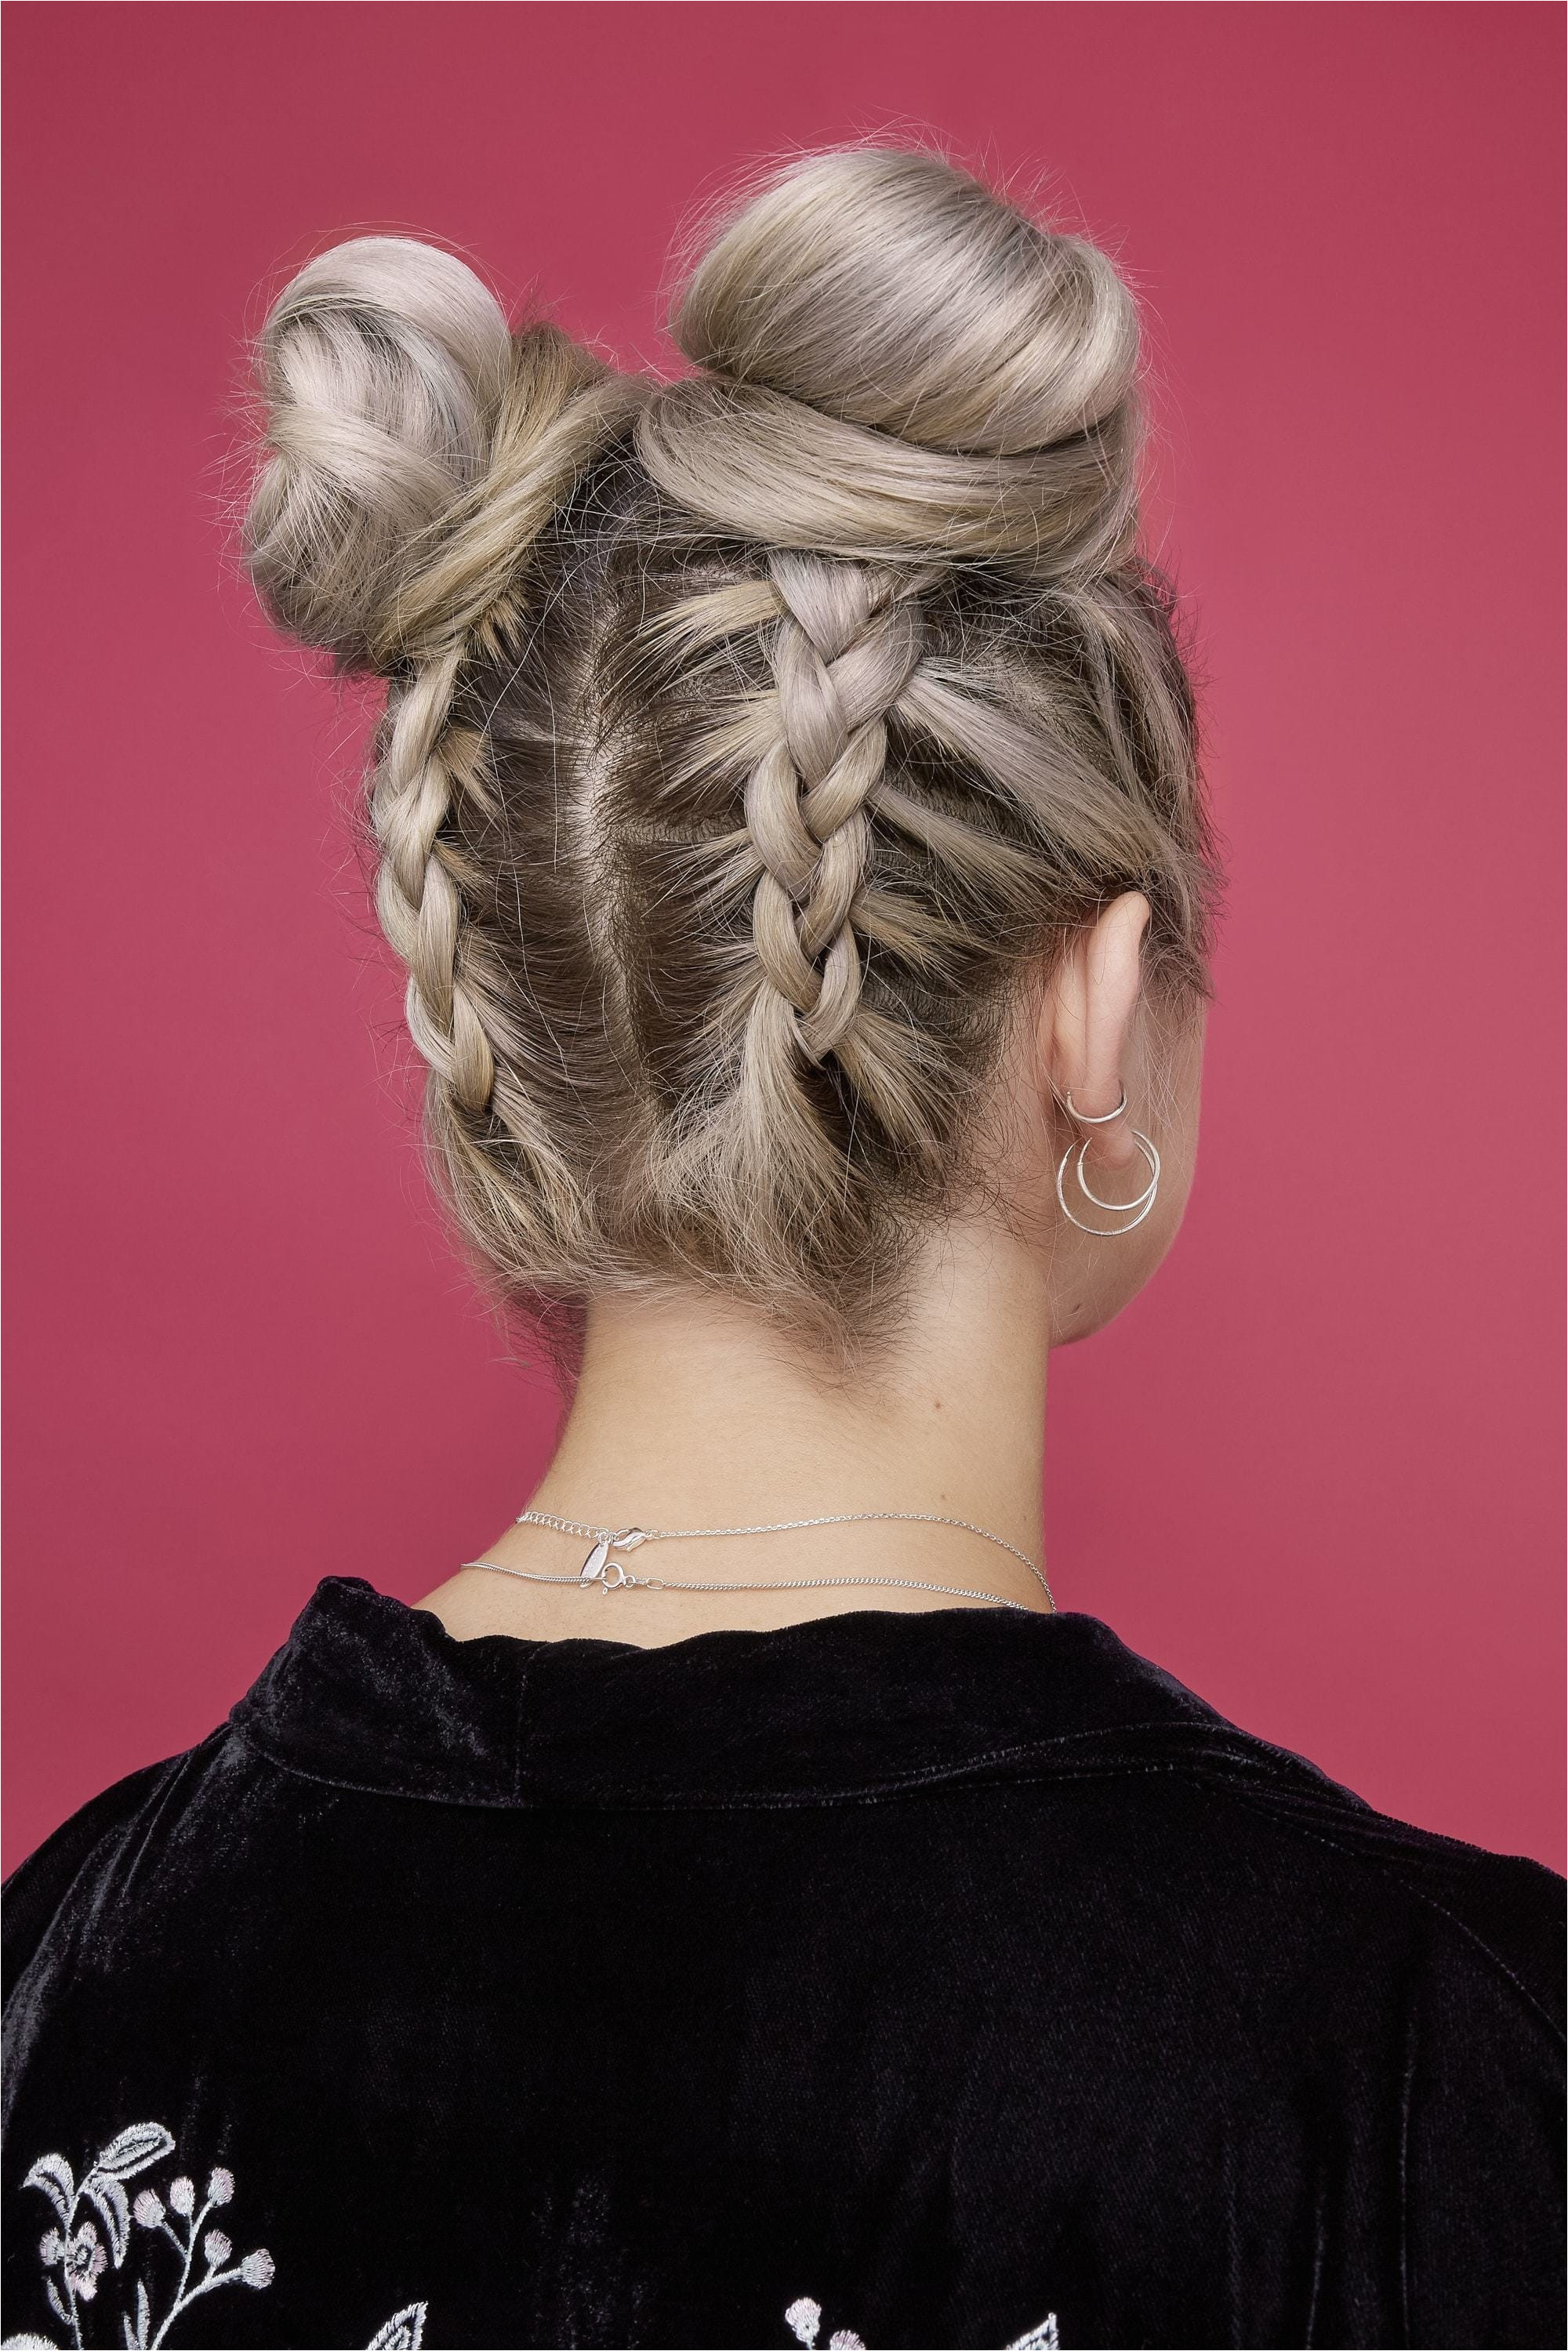 easy bun hairstyles back view of blonde model with hair styled in two double braided